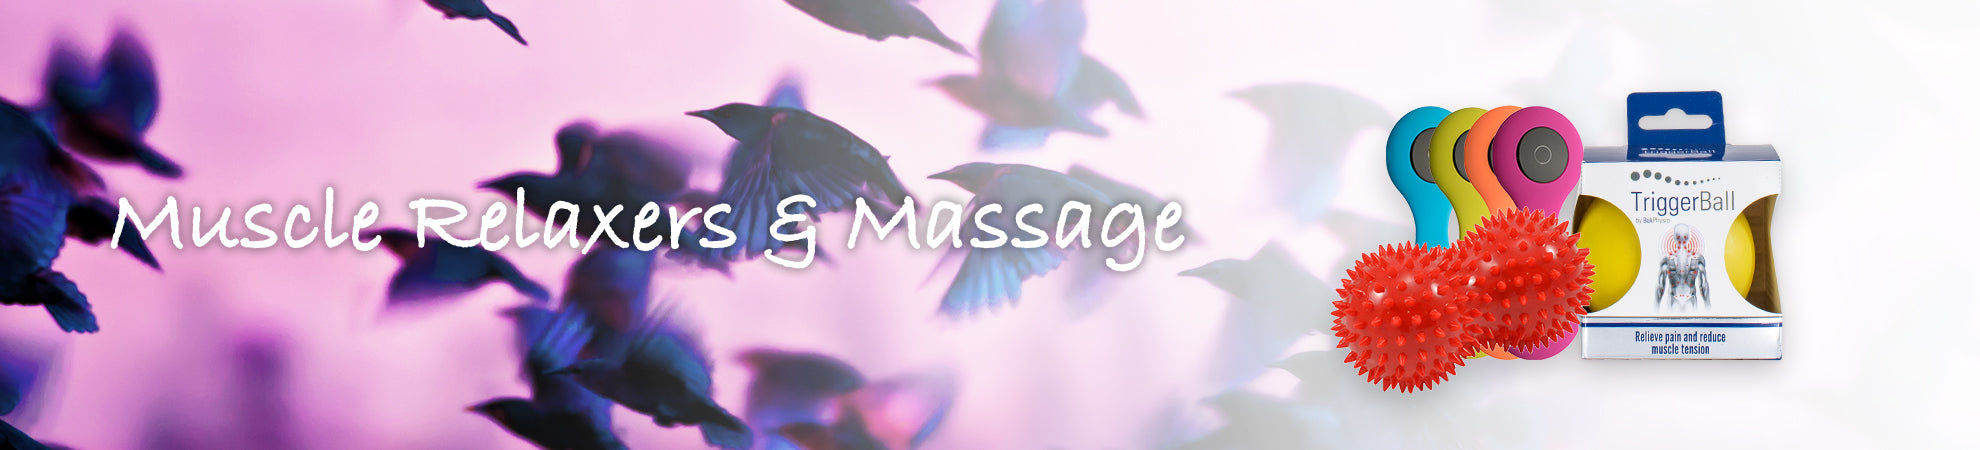 MUSCLE RELAXERS & MASSAGE